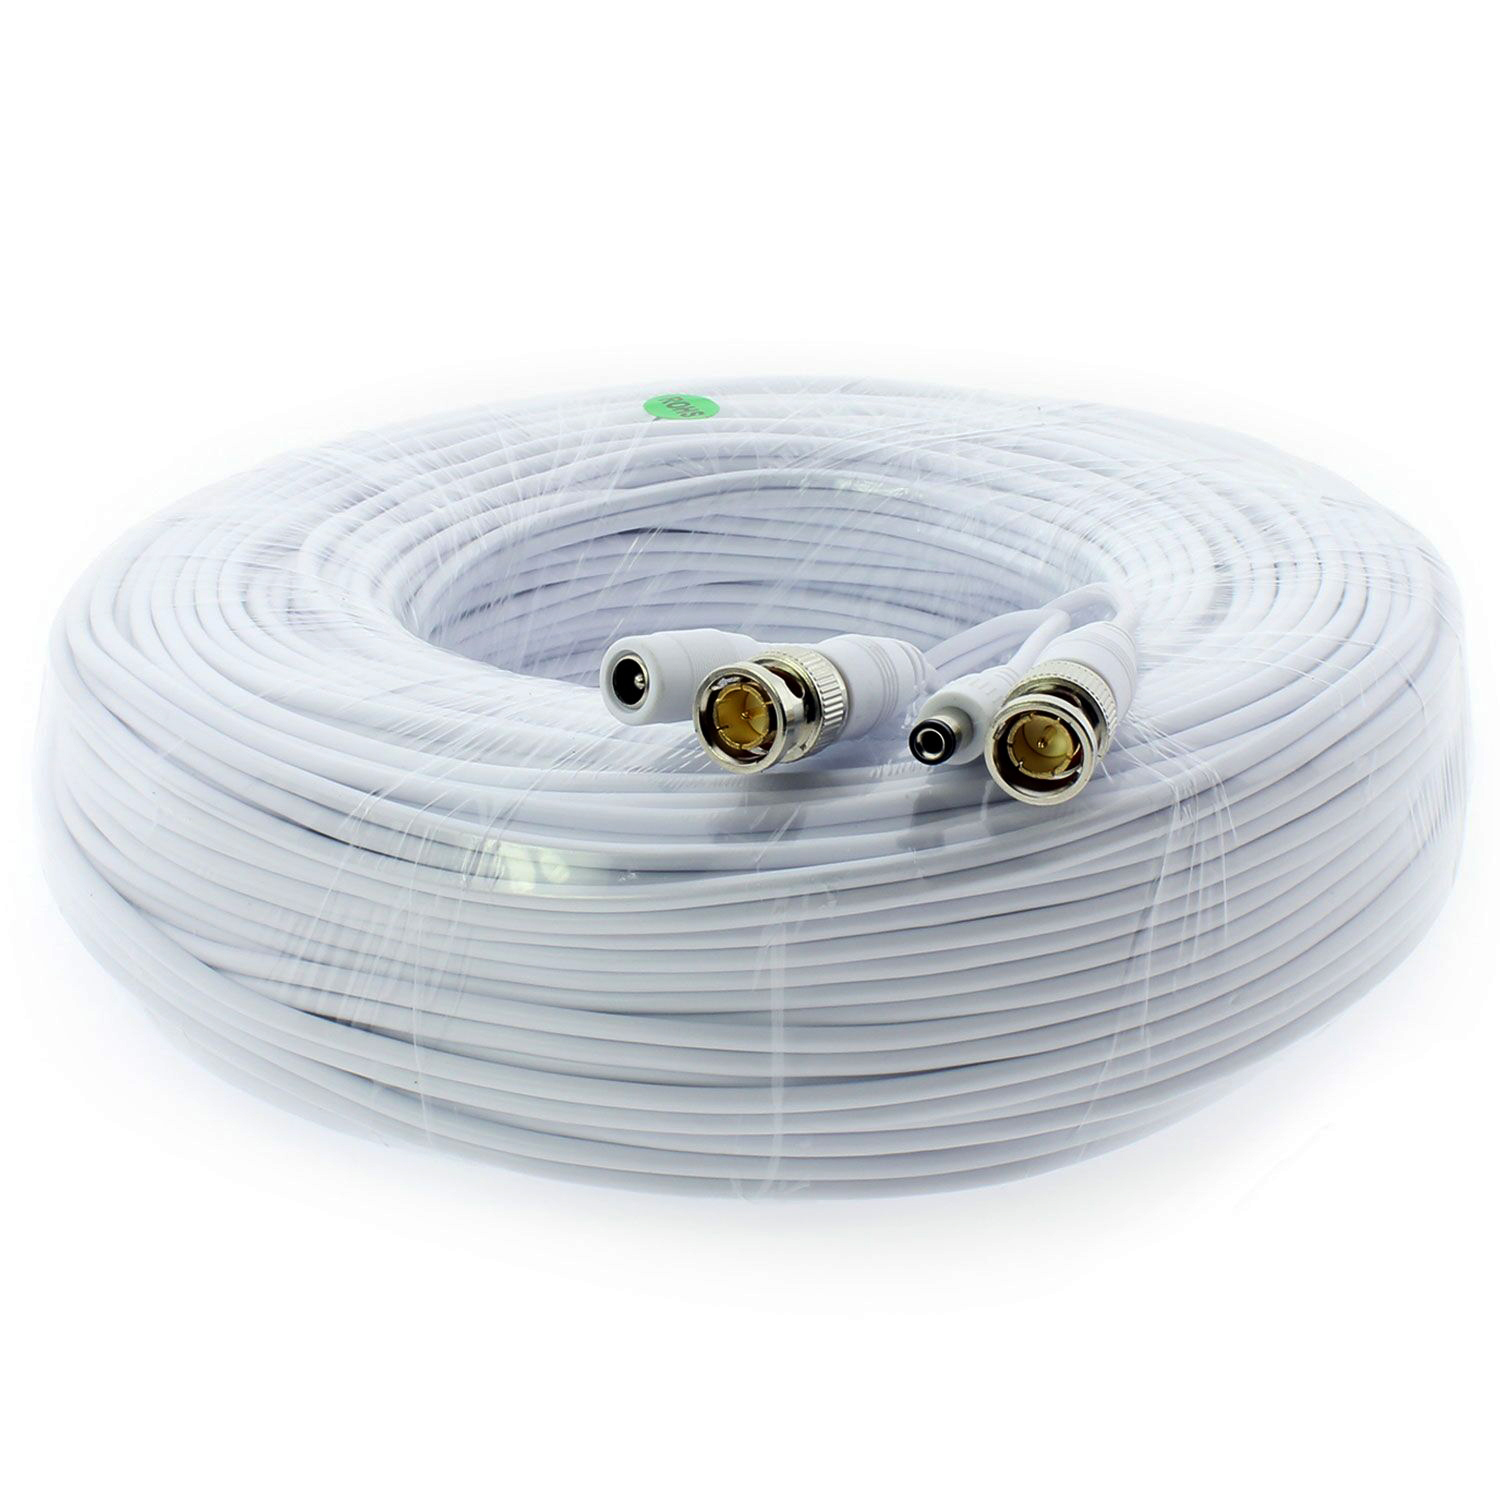 System Four Pack 200/' Security Camera Cables Premium Quality for all BNC Coax